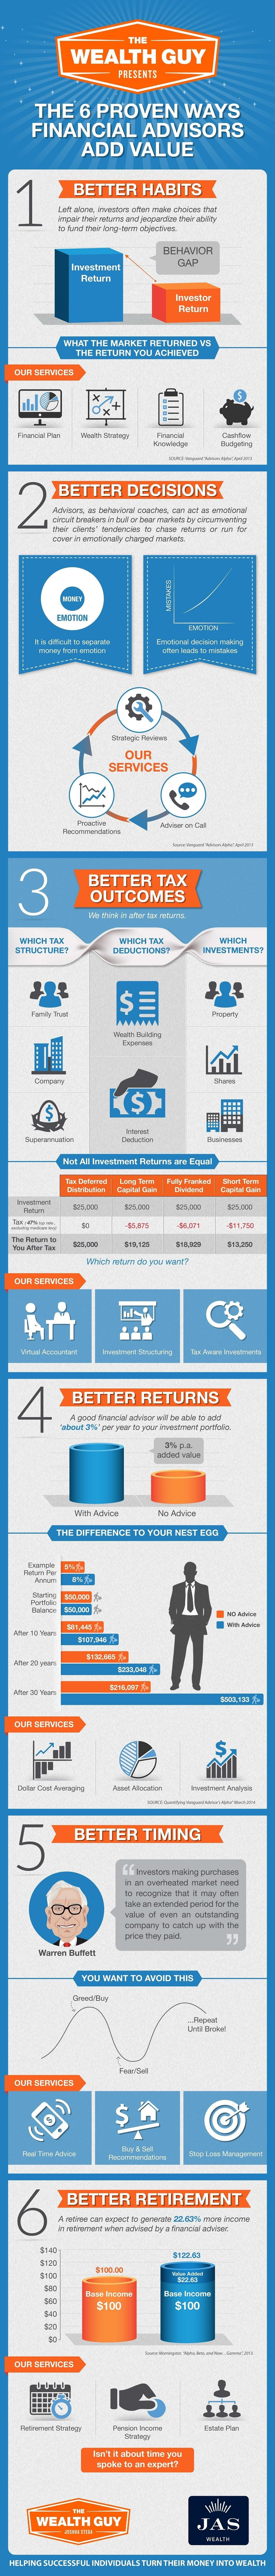 The six proven financial consultants add value #infographic